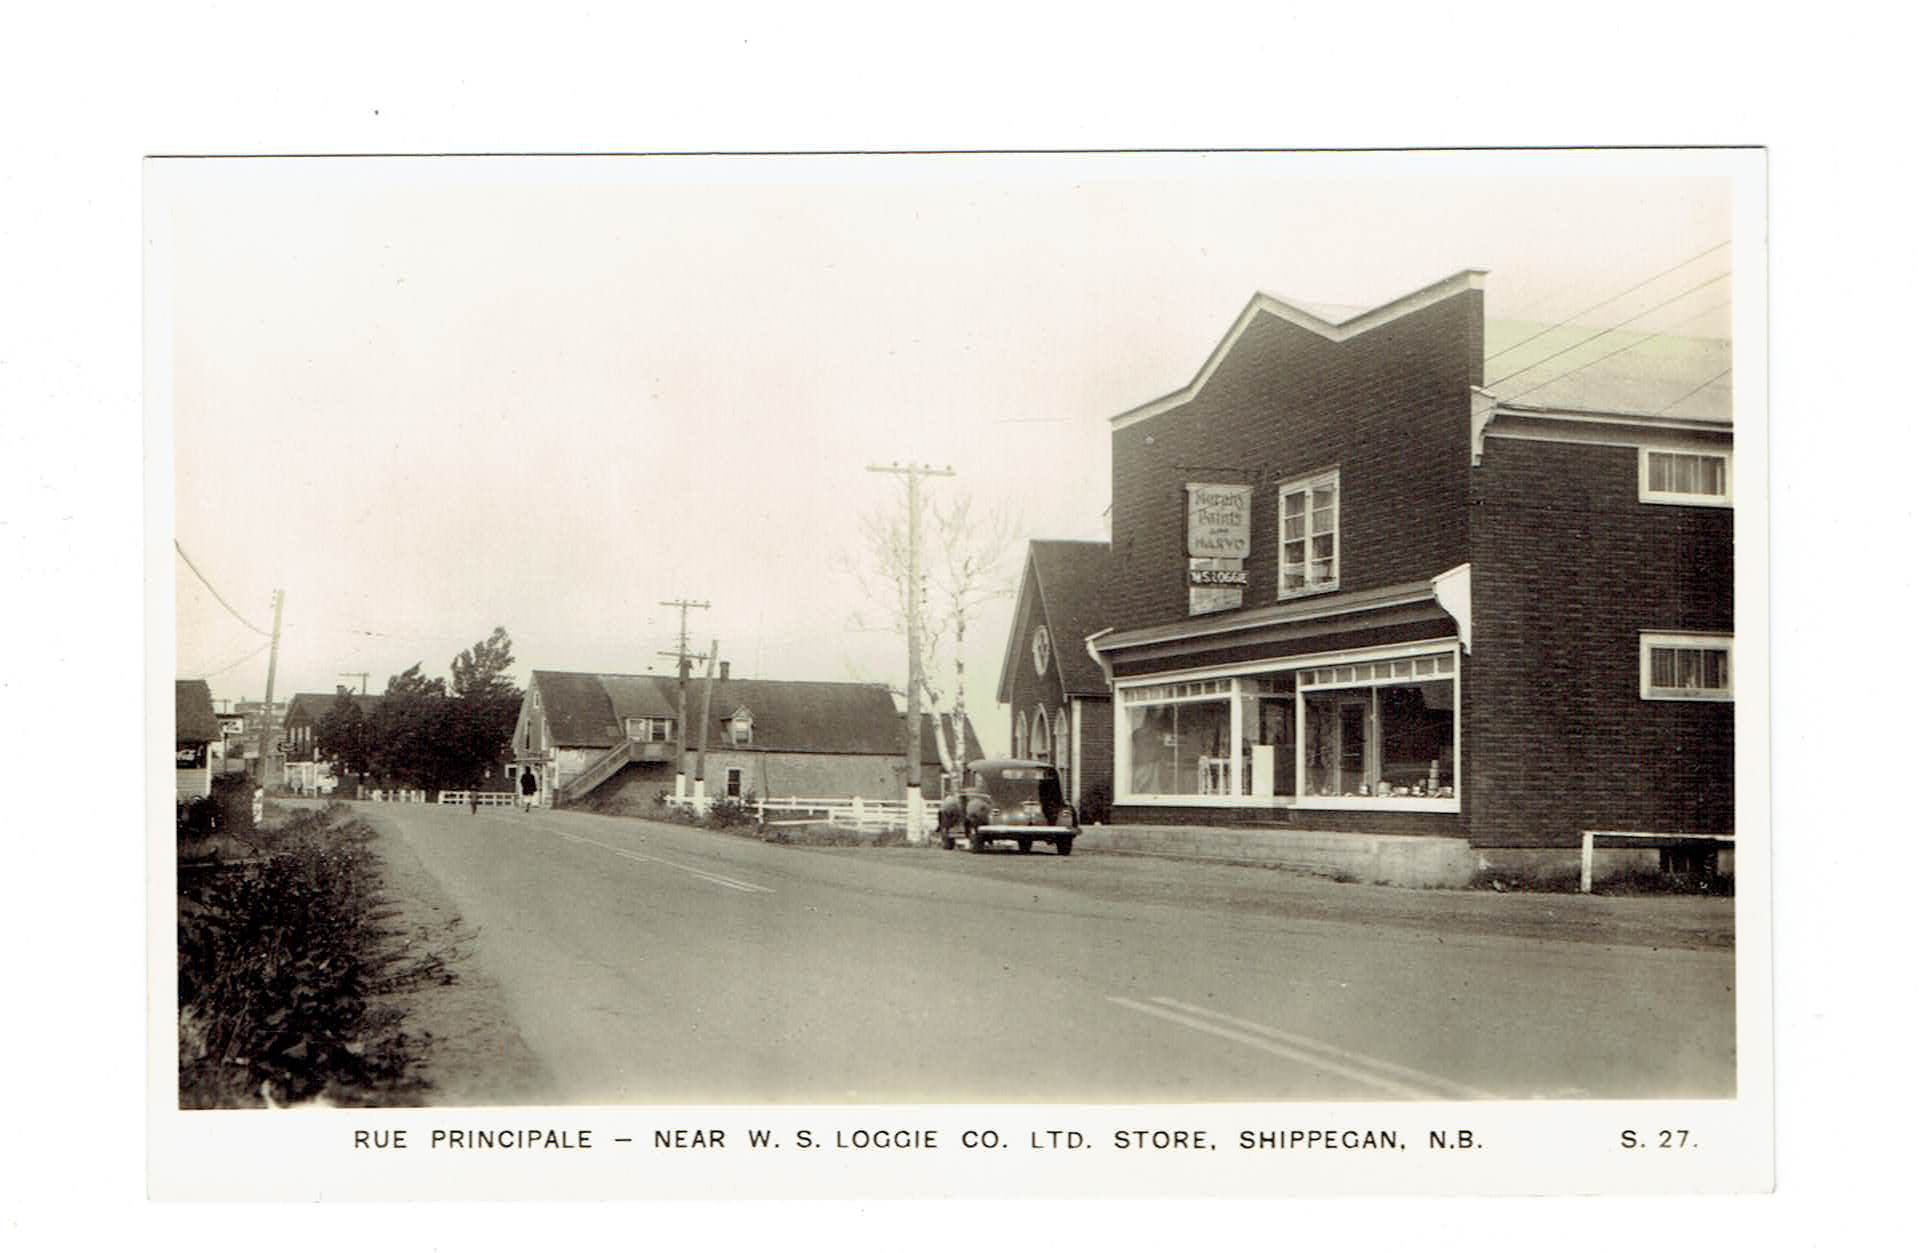 Canada Shippegan, NB. 1940's Street Scene Showing Houses And Storefront. RPPC Postcard. Canada